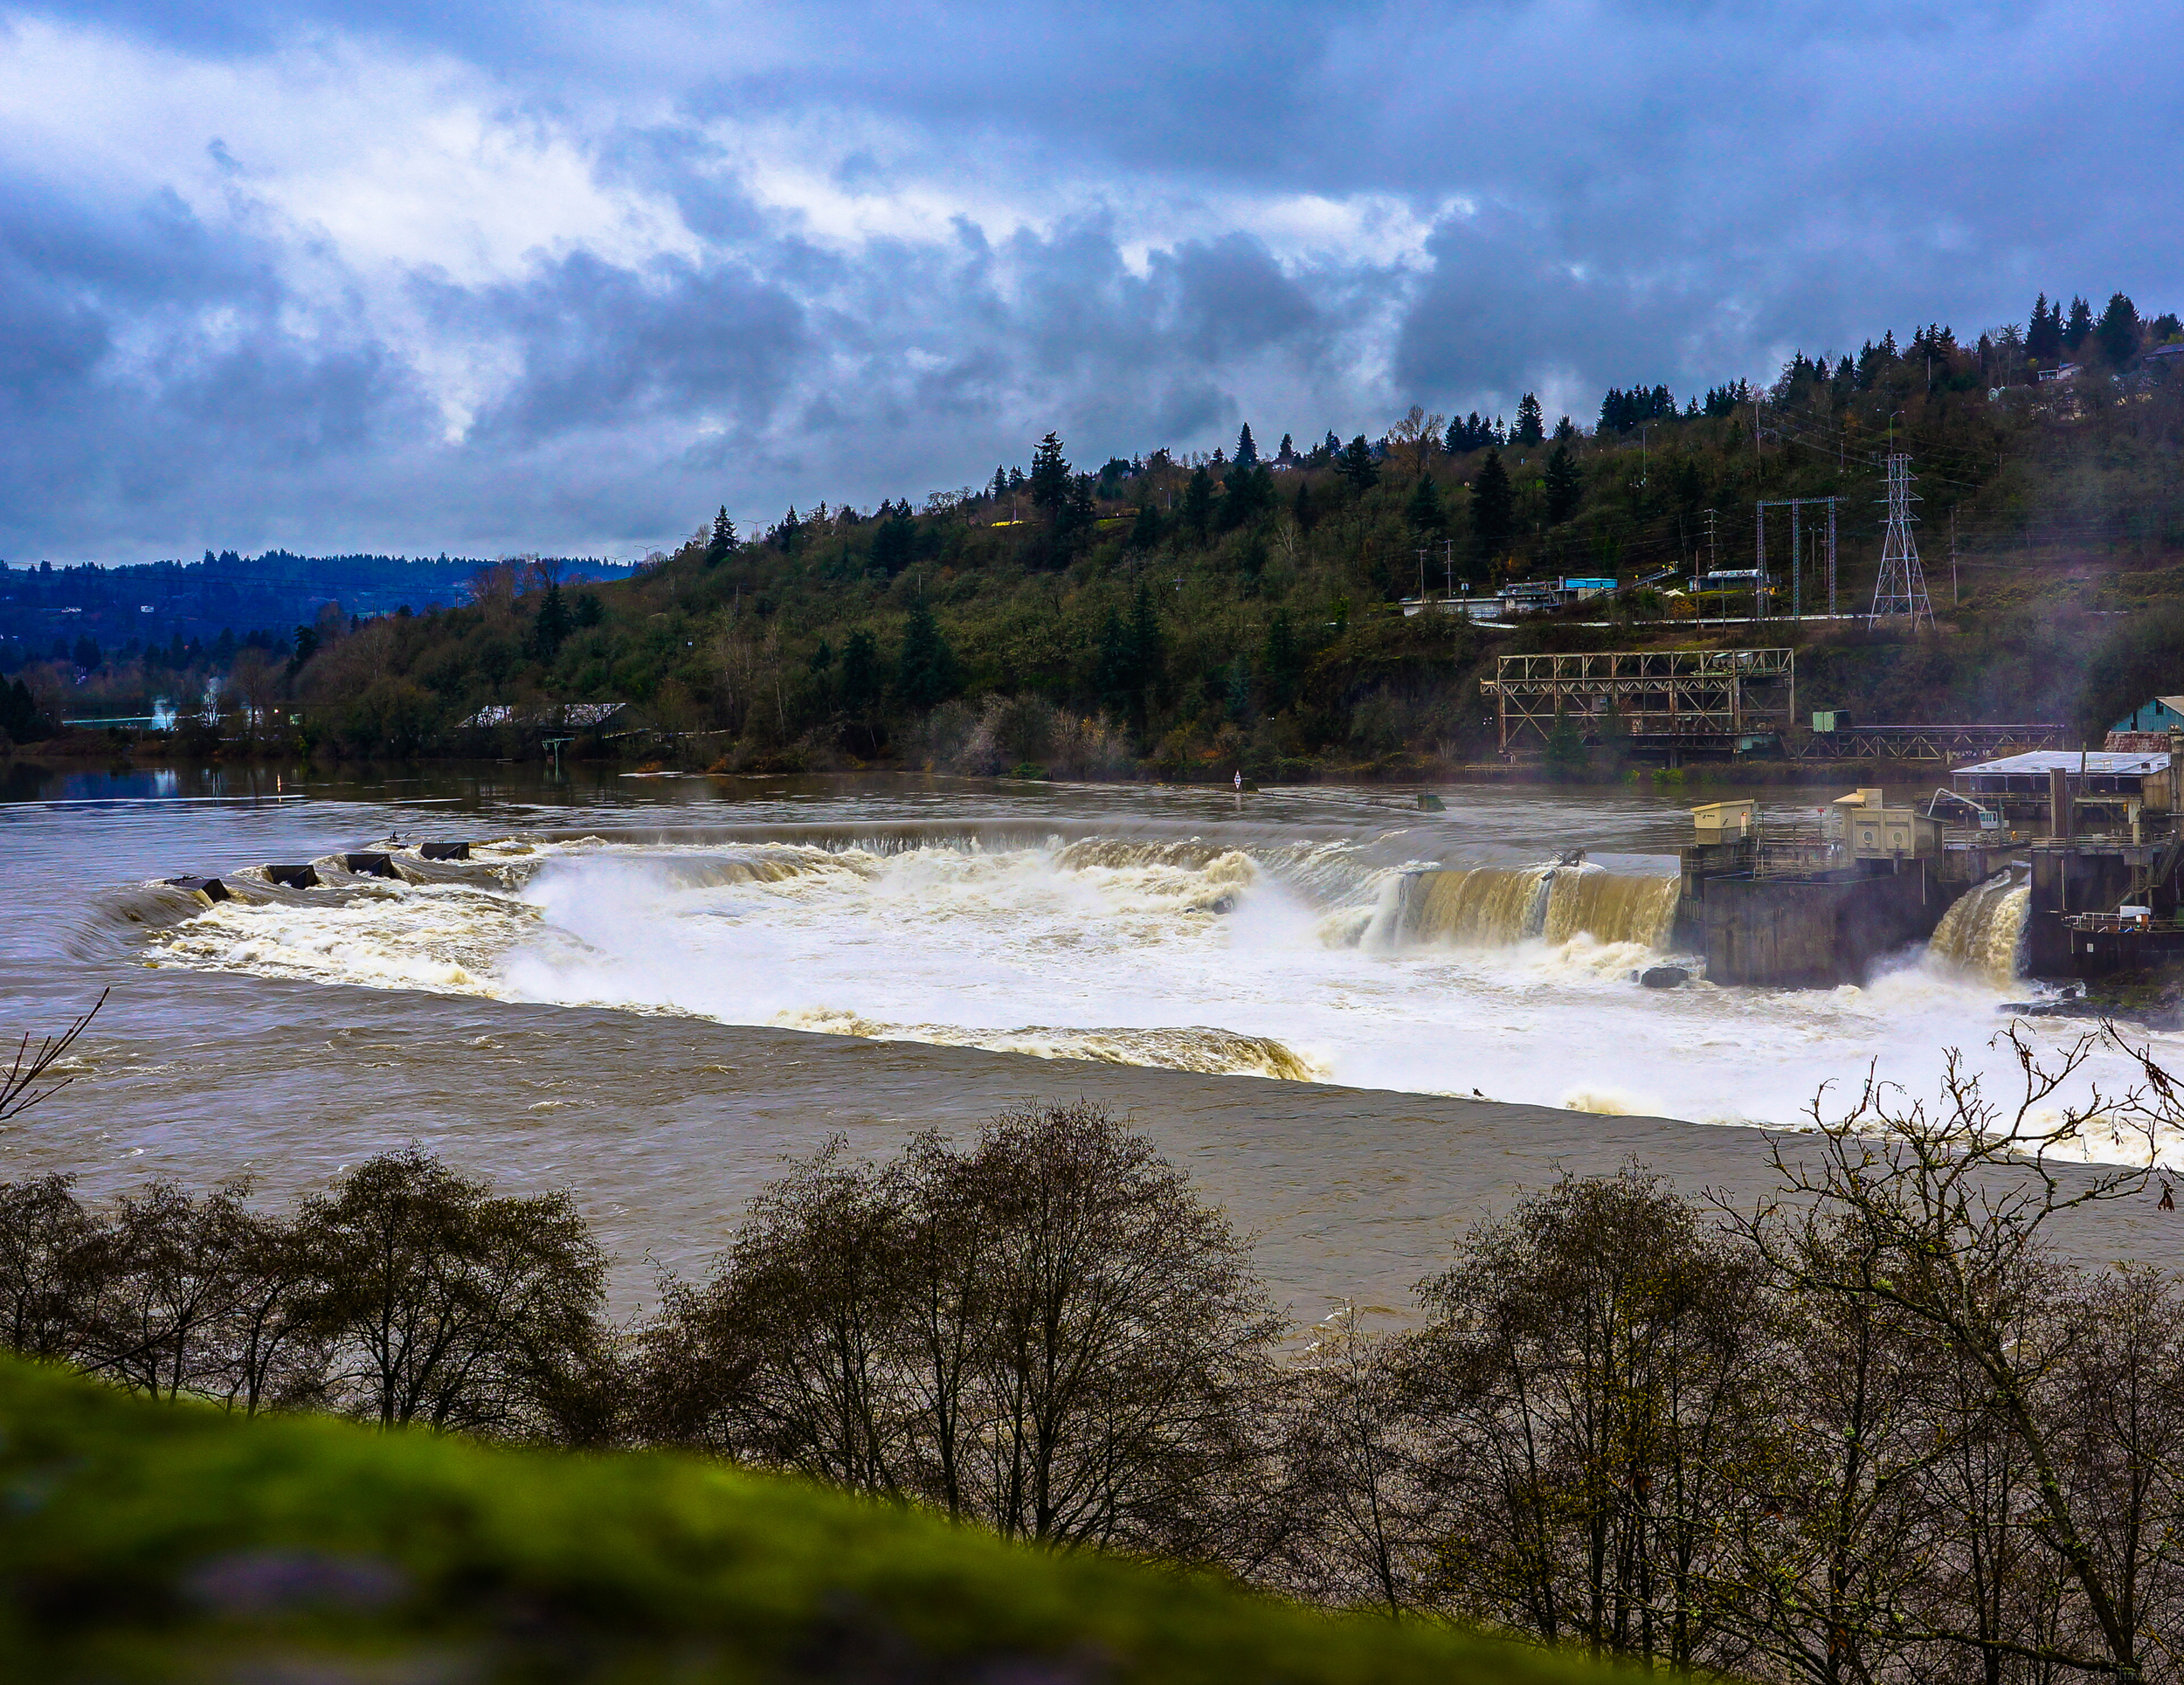 Willamette Falls | 365 Project | Dec 8th, 2012